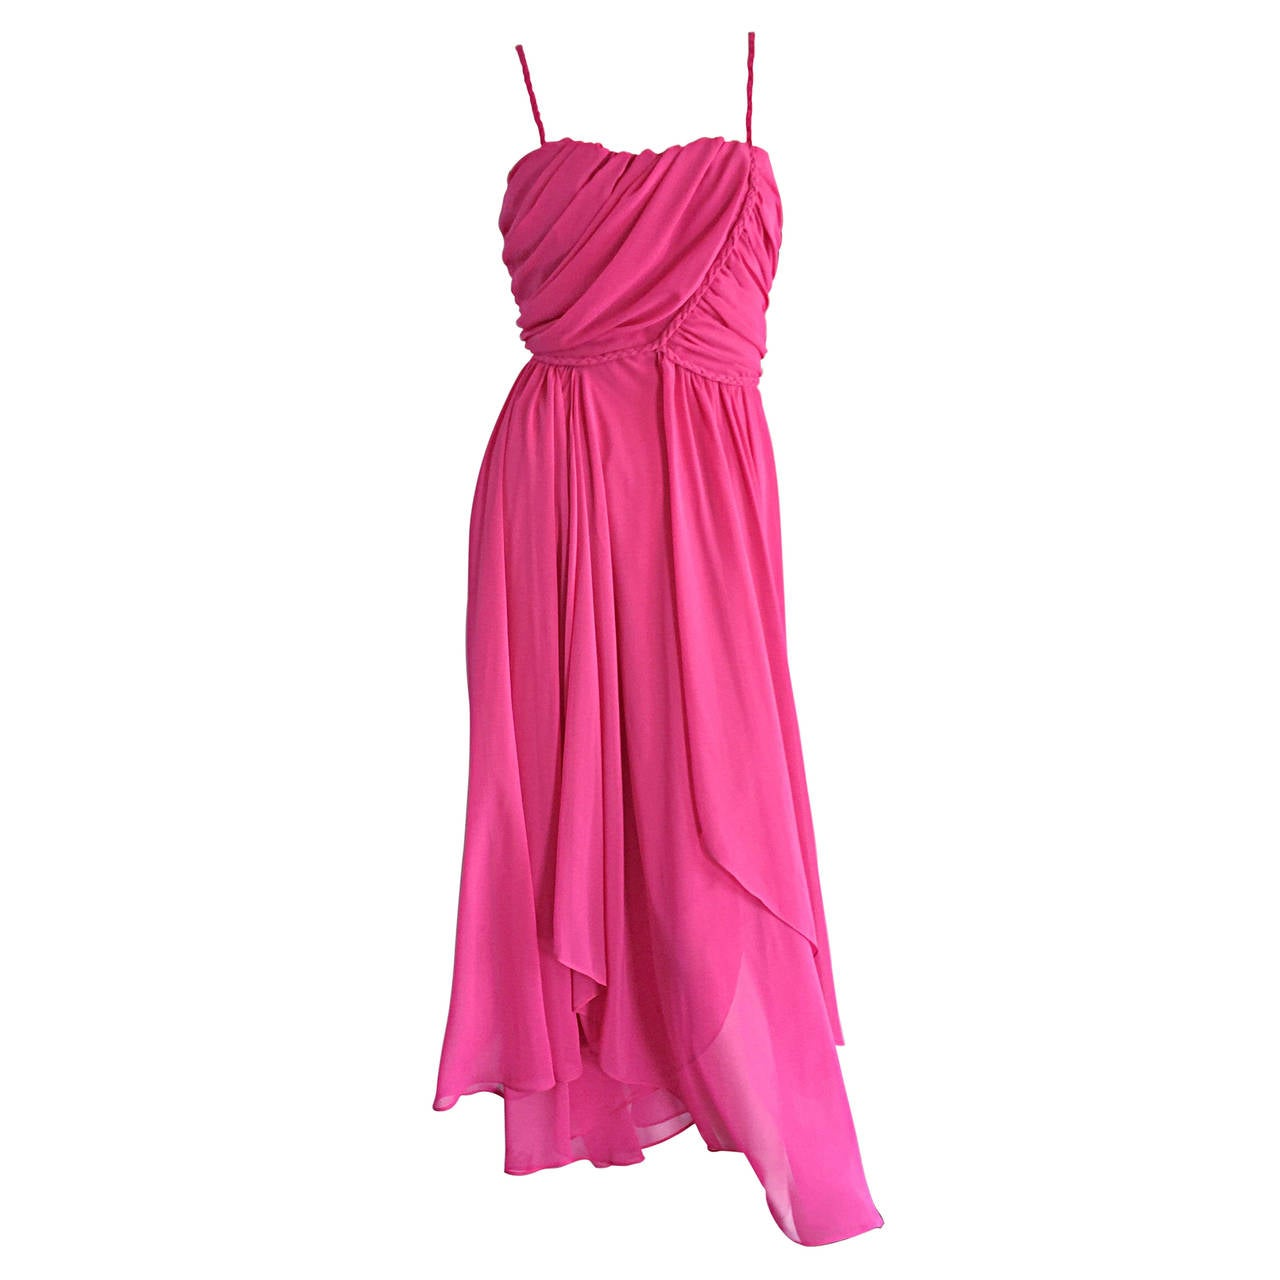 1970s Joy Stevens Hot Pink Vintage Flowy Grecian Disco Dress w/ Braided Details 1